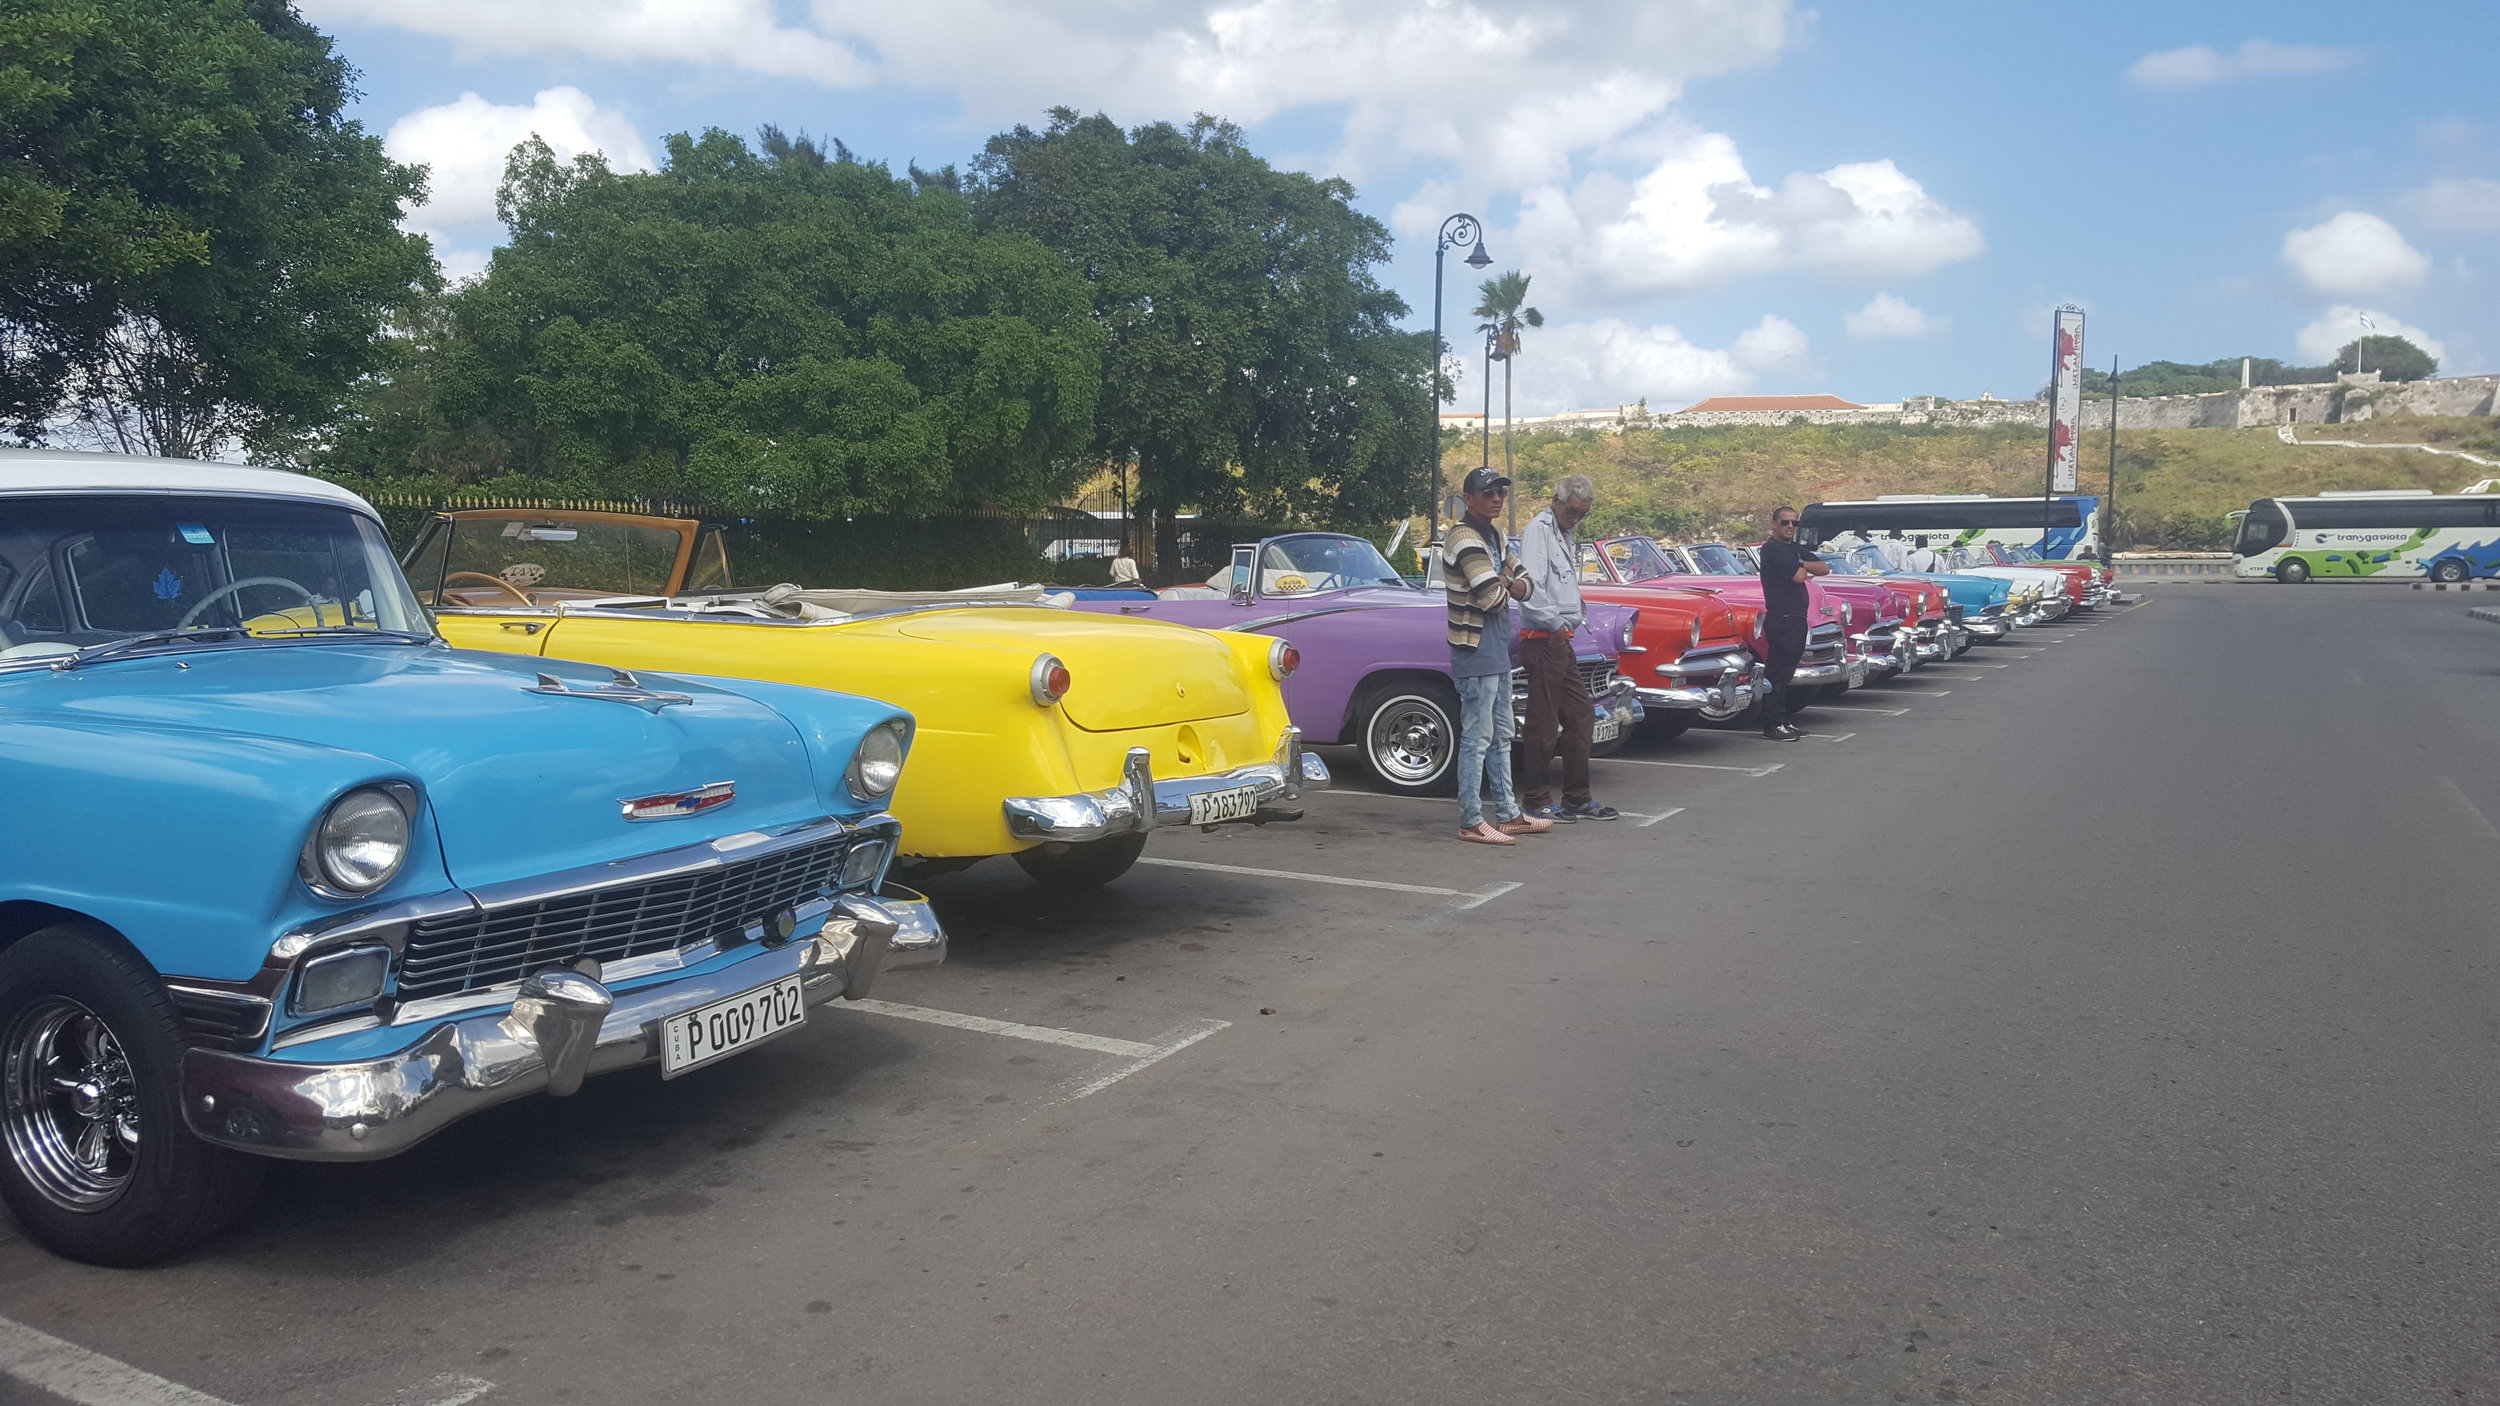 A line up of old cars in Old Havana and their drivers, waiting for customers. This isn't even a car show, just a regular day in Havana!